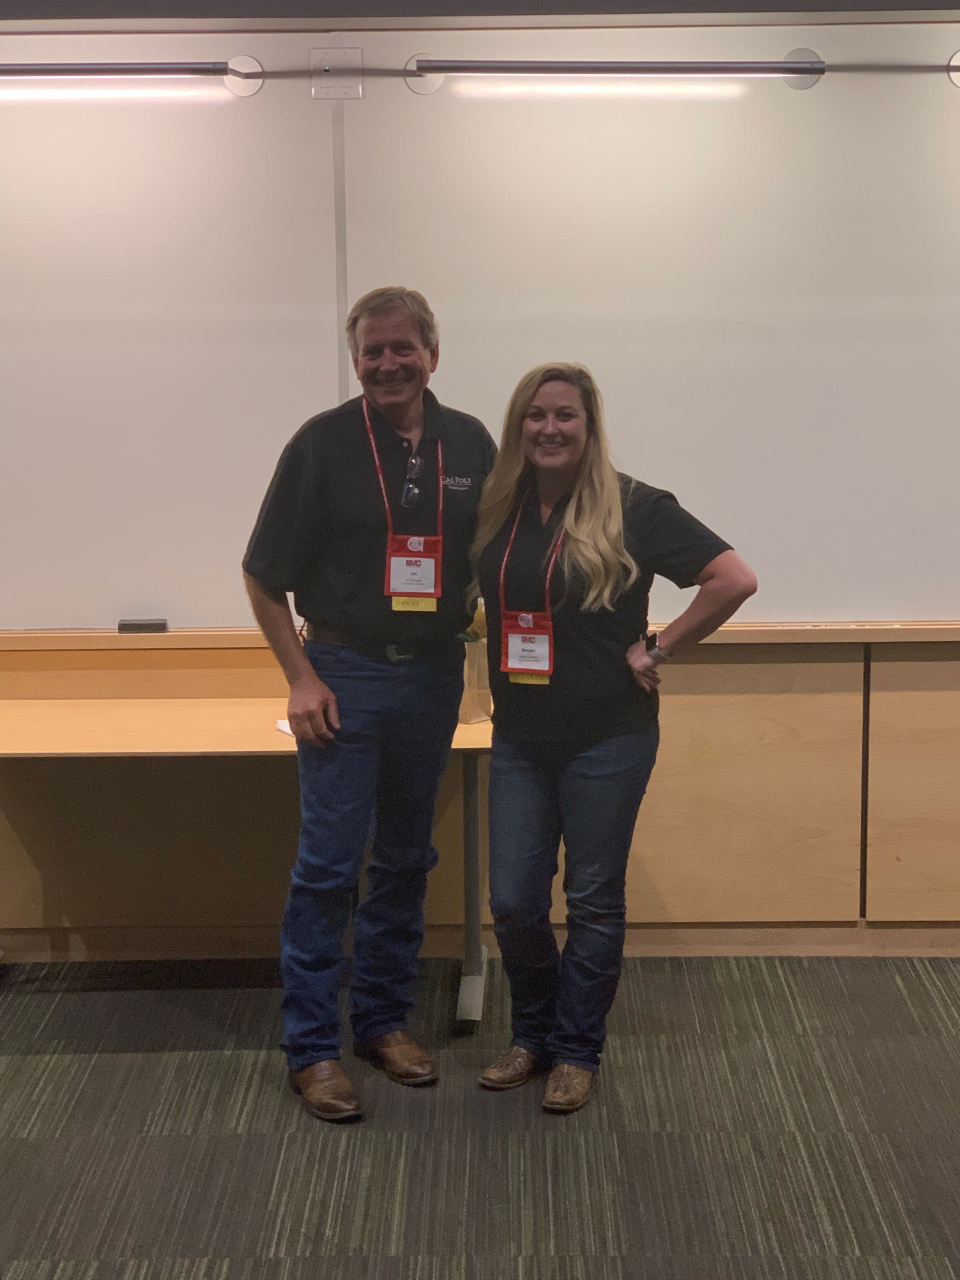 Jim and Morgan after presenting their reciprocal session.